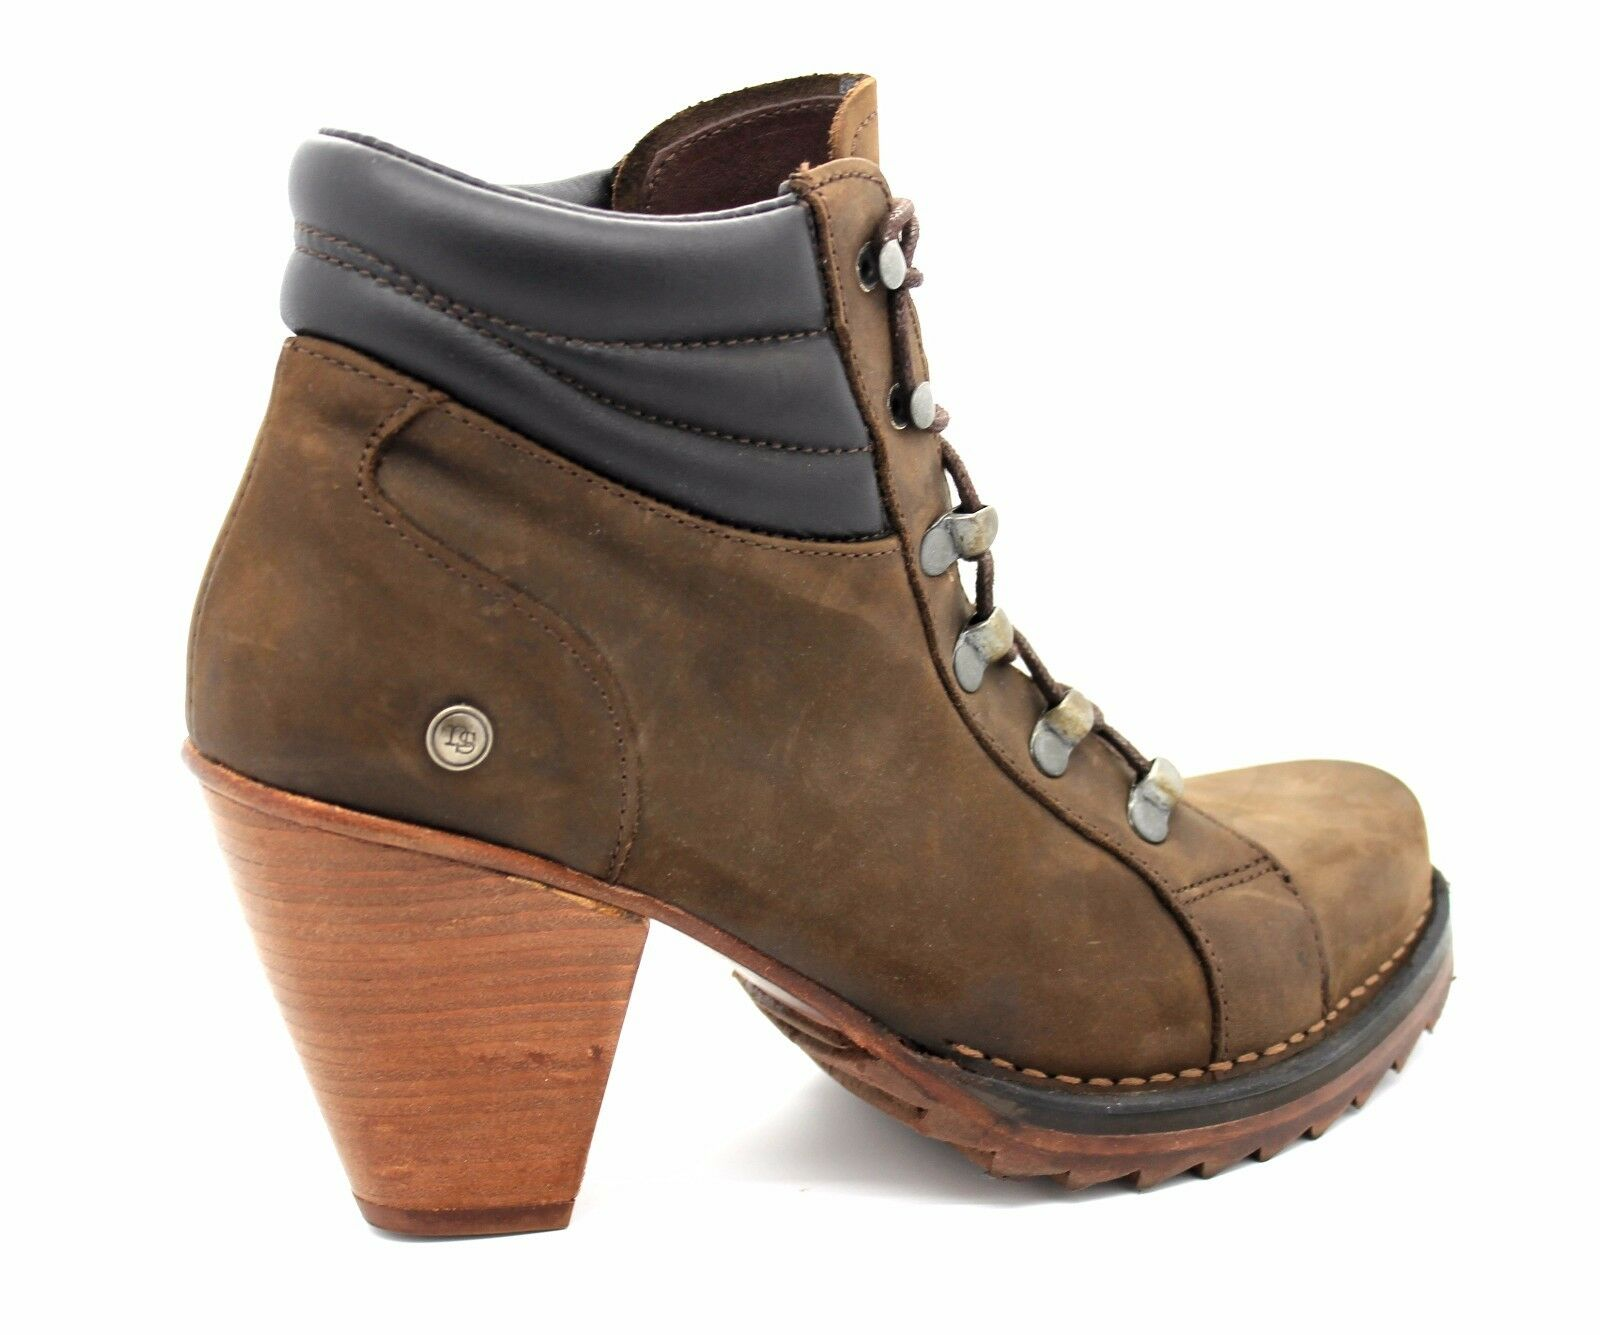 Neosens UK 6 (EU 39) Chelva S230 Chocolate Brown Leather Leather Leather High Heel Ankle Boots 4daf66